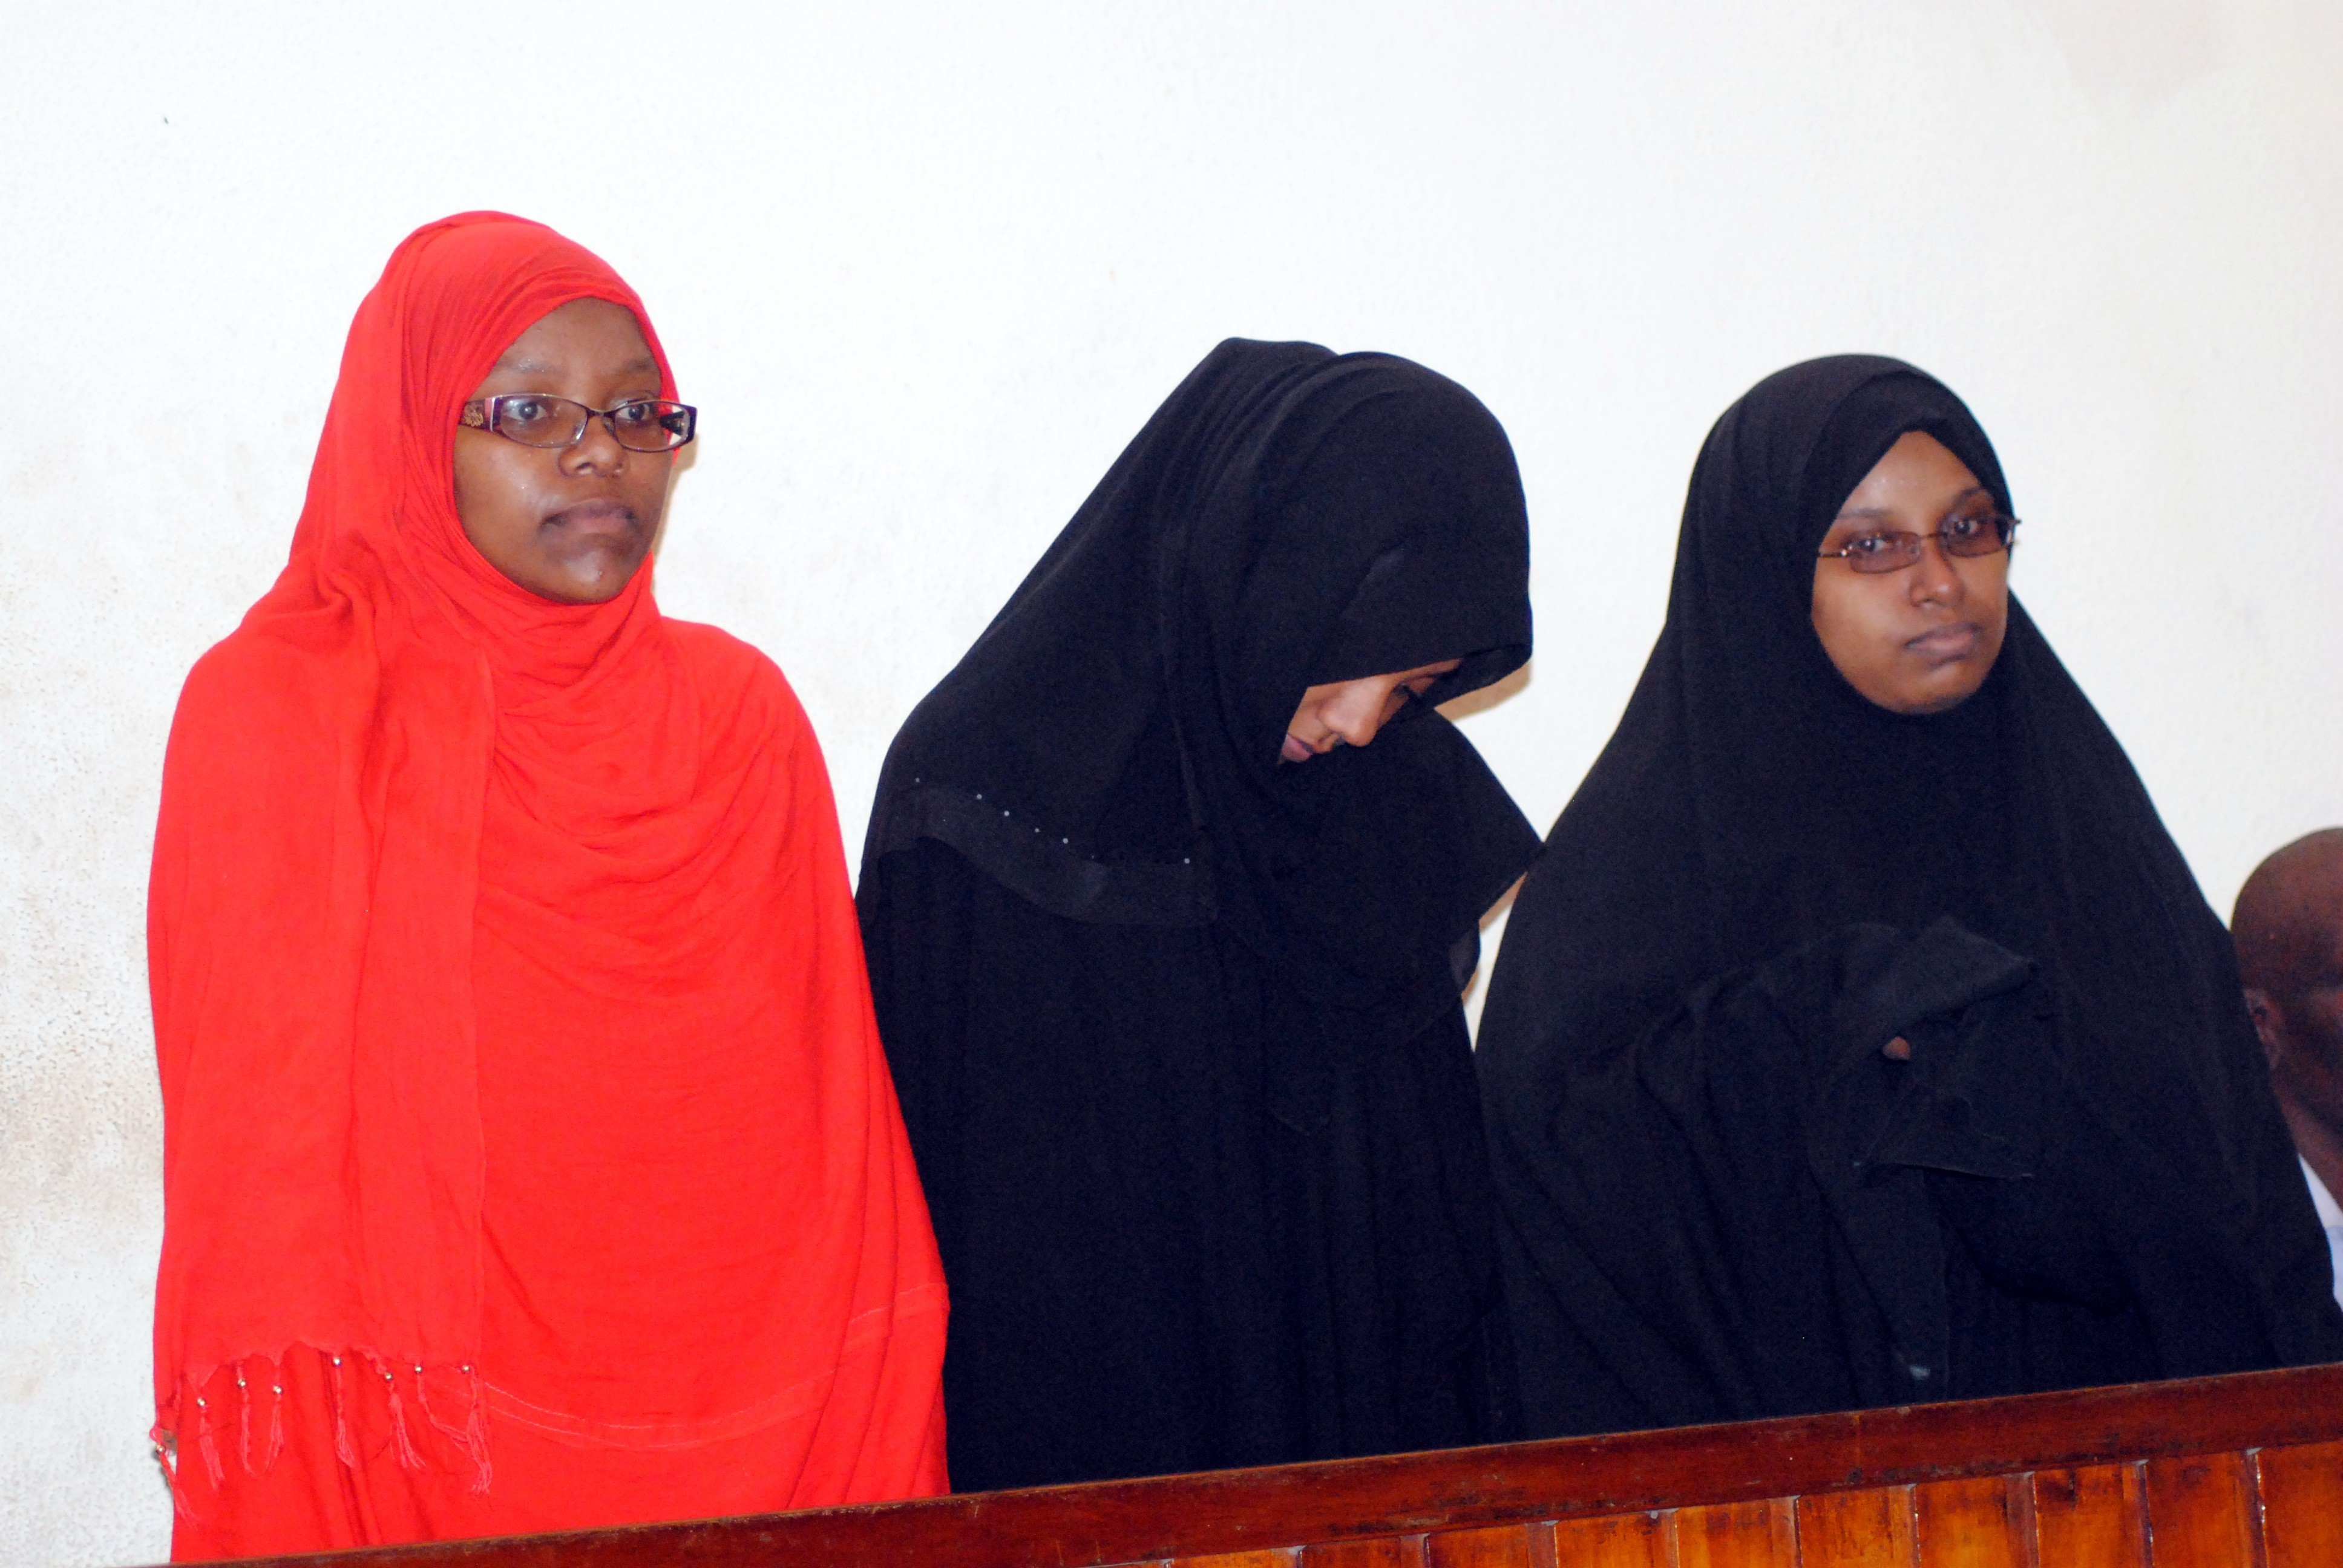 MOMBASA, KENYA - MARCH 30: Three women on Monday were brought before a court in Kenya's coastal city of Mombasa on March 30, 2015 after having been arrested by security forces at the border with Somalia for allegedly planning to travel to Syria. The three young women, one Tanzanian and two Kenyans, were arrested on Saturday near El Wak, a Kenyan town less than 10km from the Somali border. (Photo by Yassin Juma/Anadolu Agency/Getty Images)